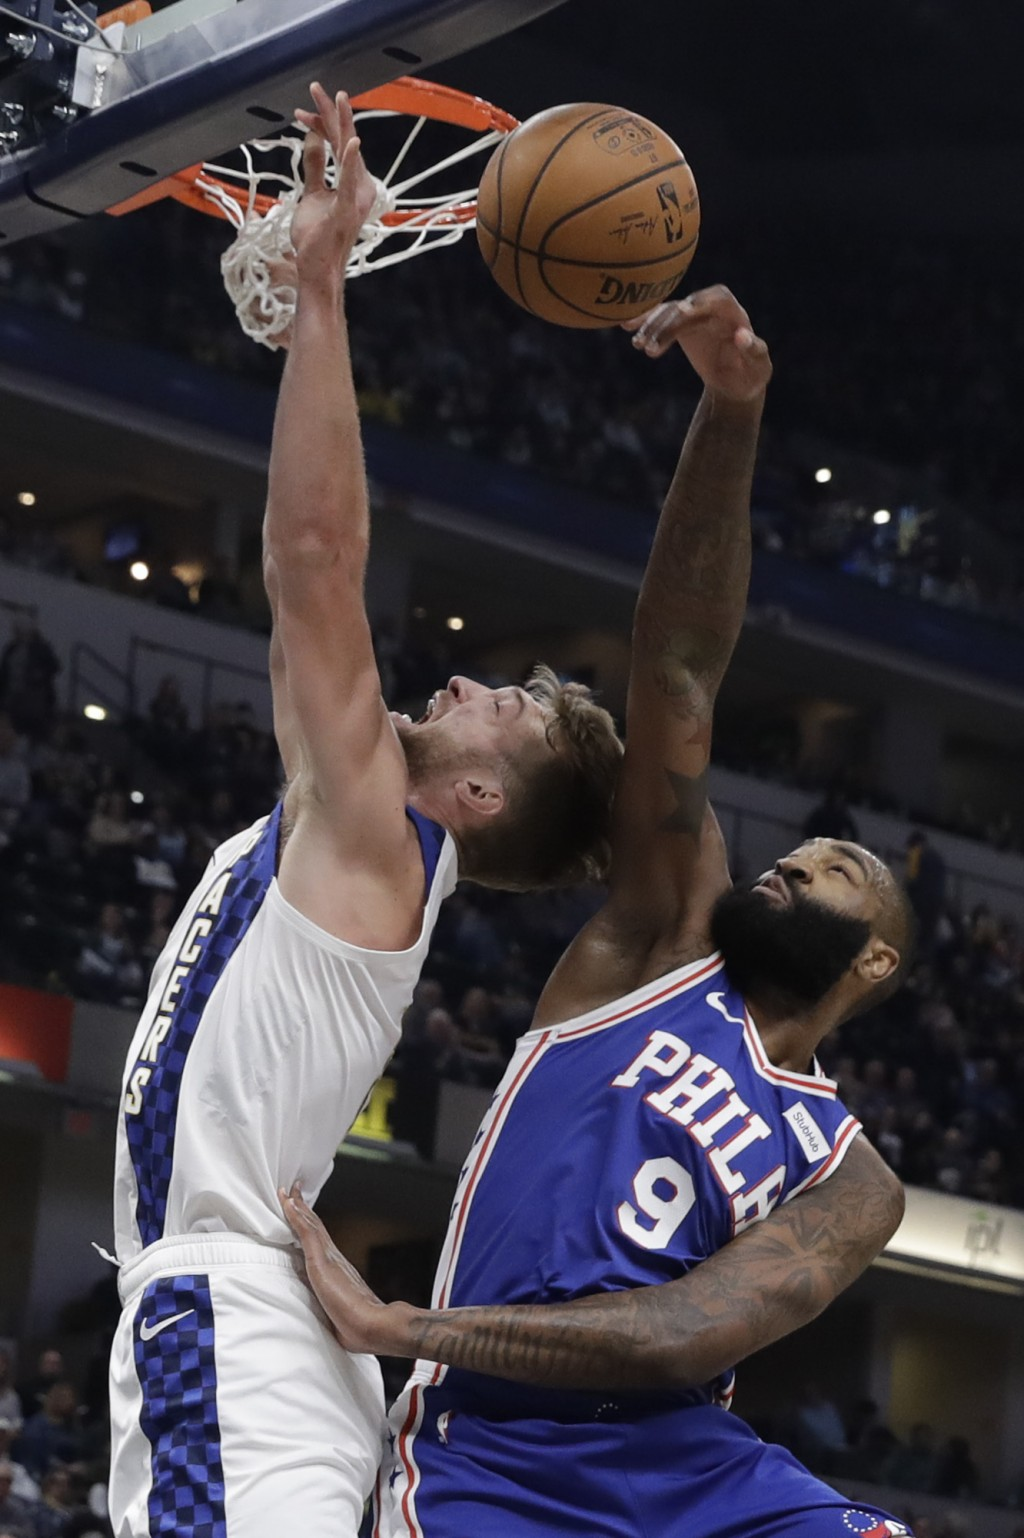 Indiana Pacers' Domantas Sabonis (11) has his shot blocked by Philadelphia 76ers' Kyle O'Quinn (9) during the first half of an NBA basketball game, Tu...